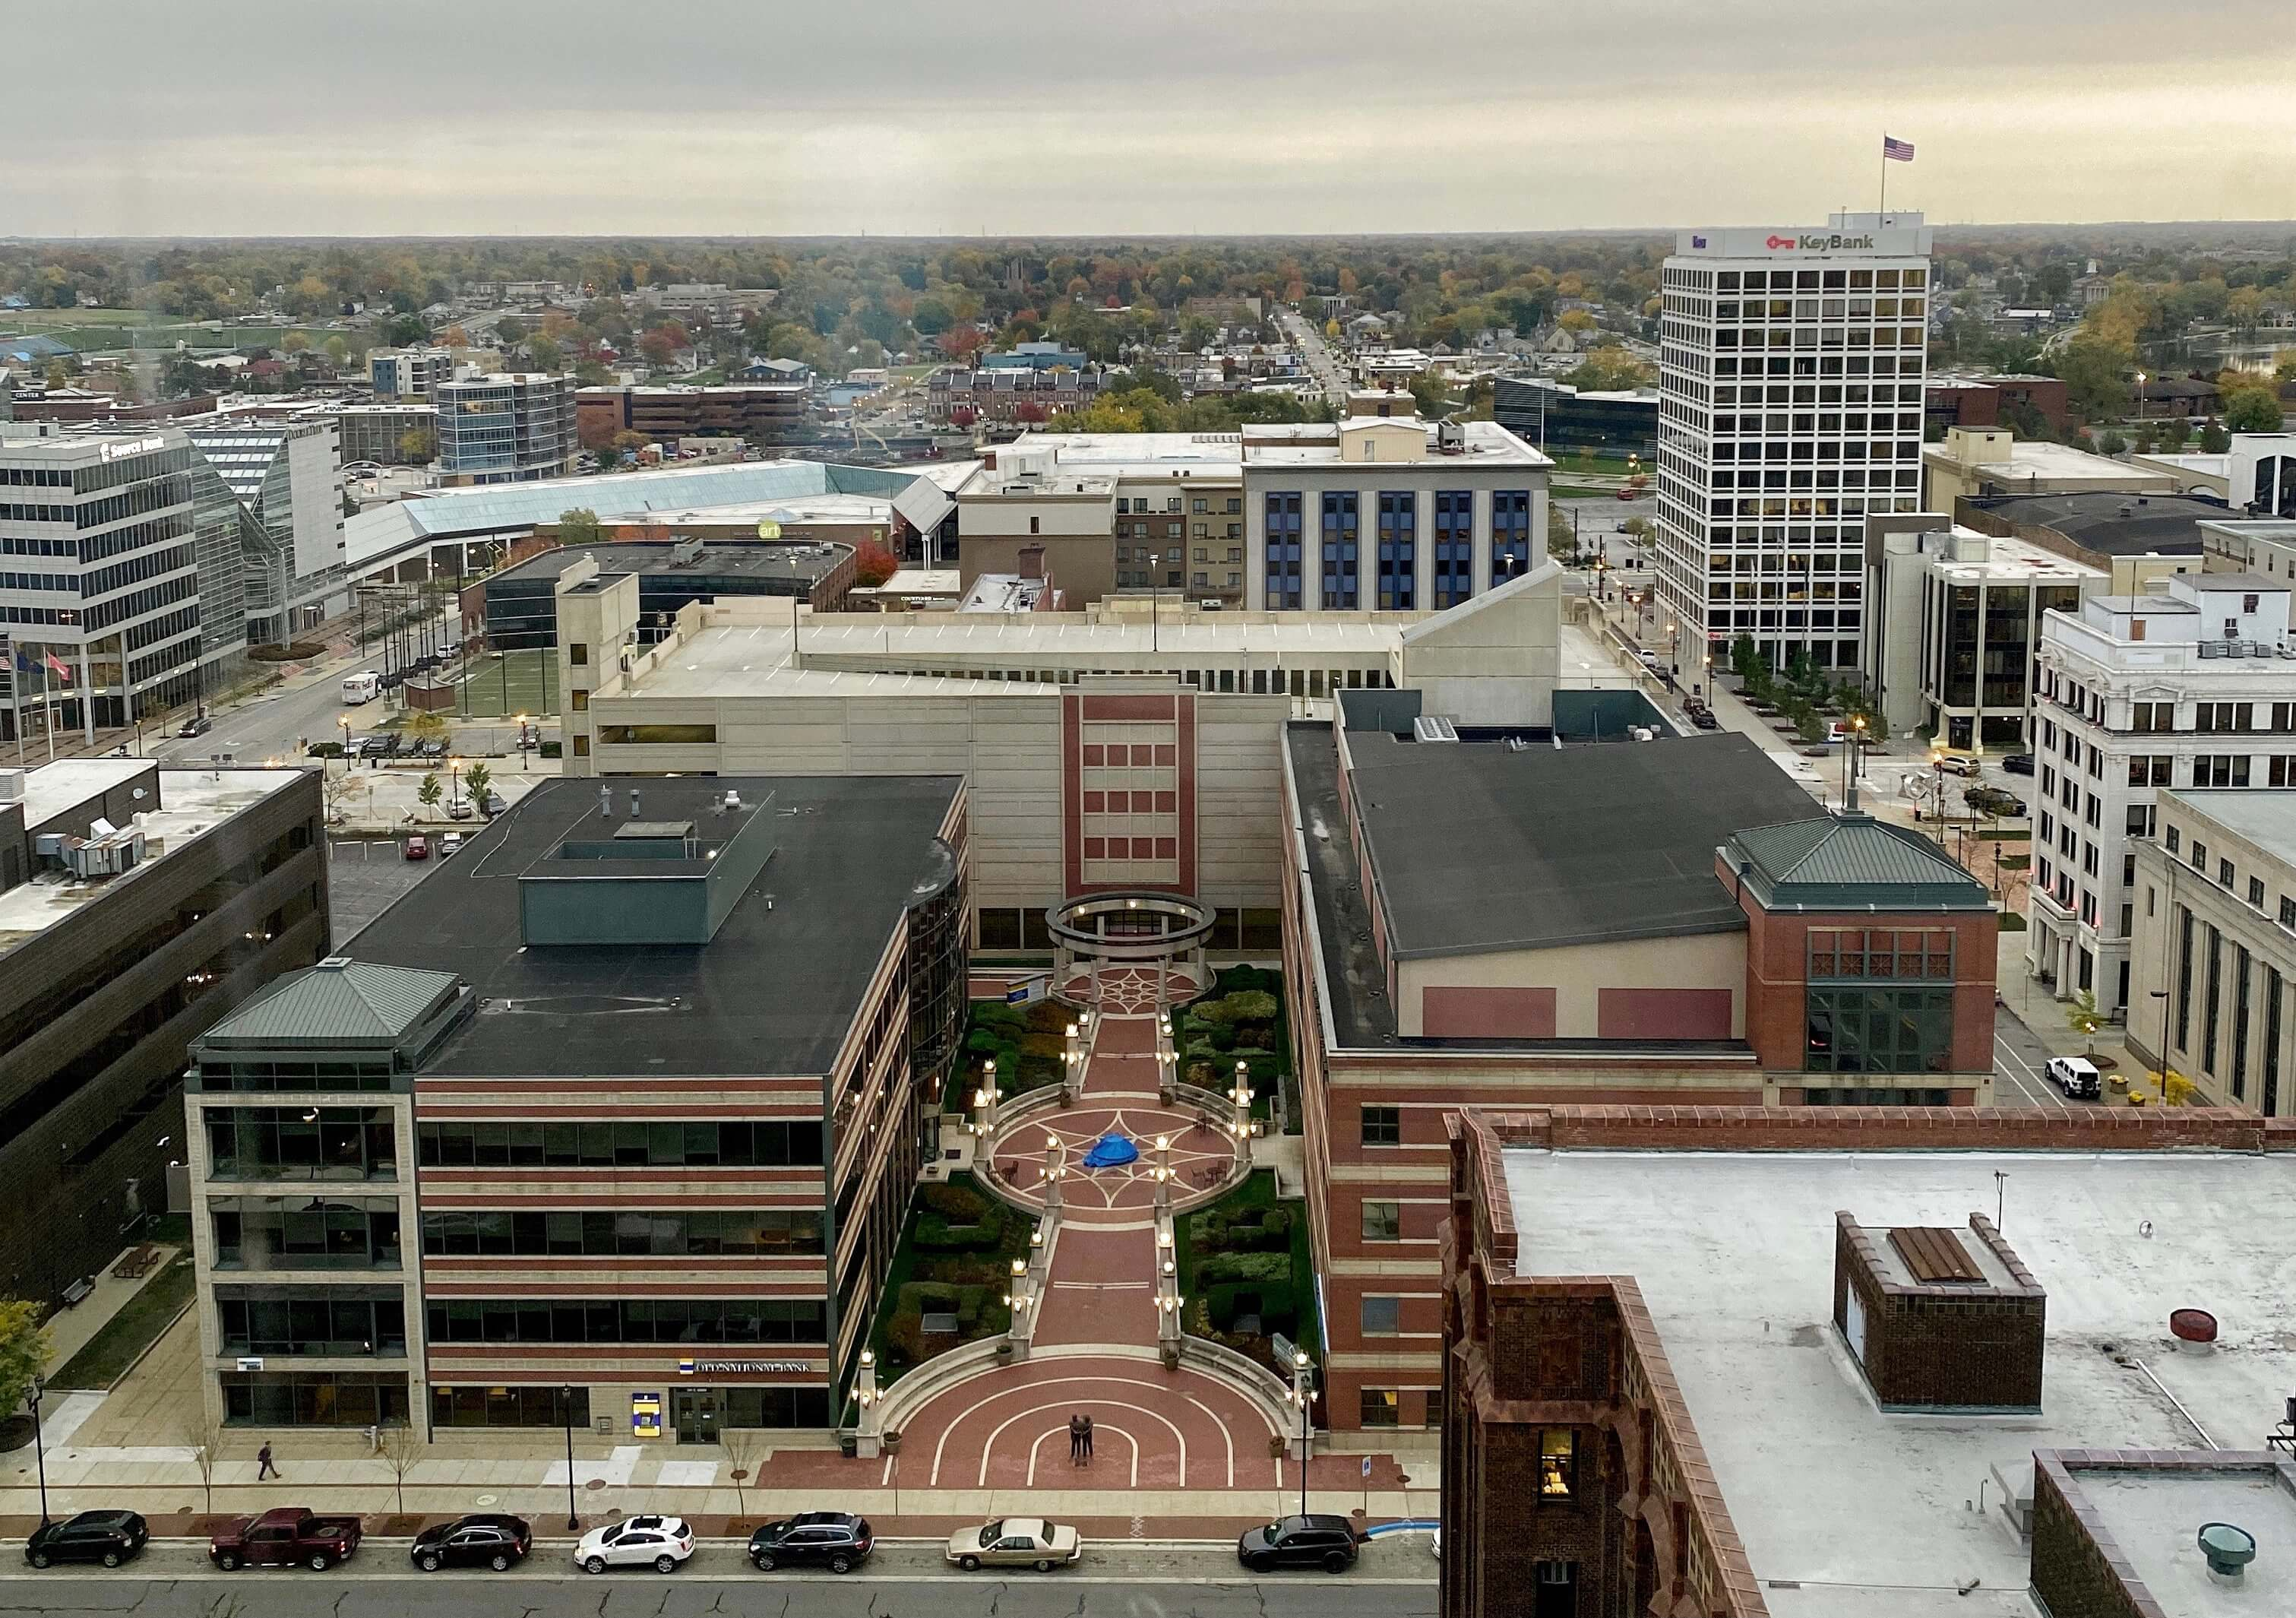 Overlooking downtown South Bend from the top floor of the County-City building. Photo by Camille Zyniewicz.